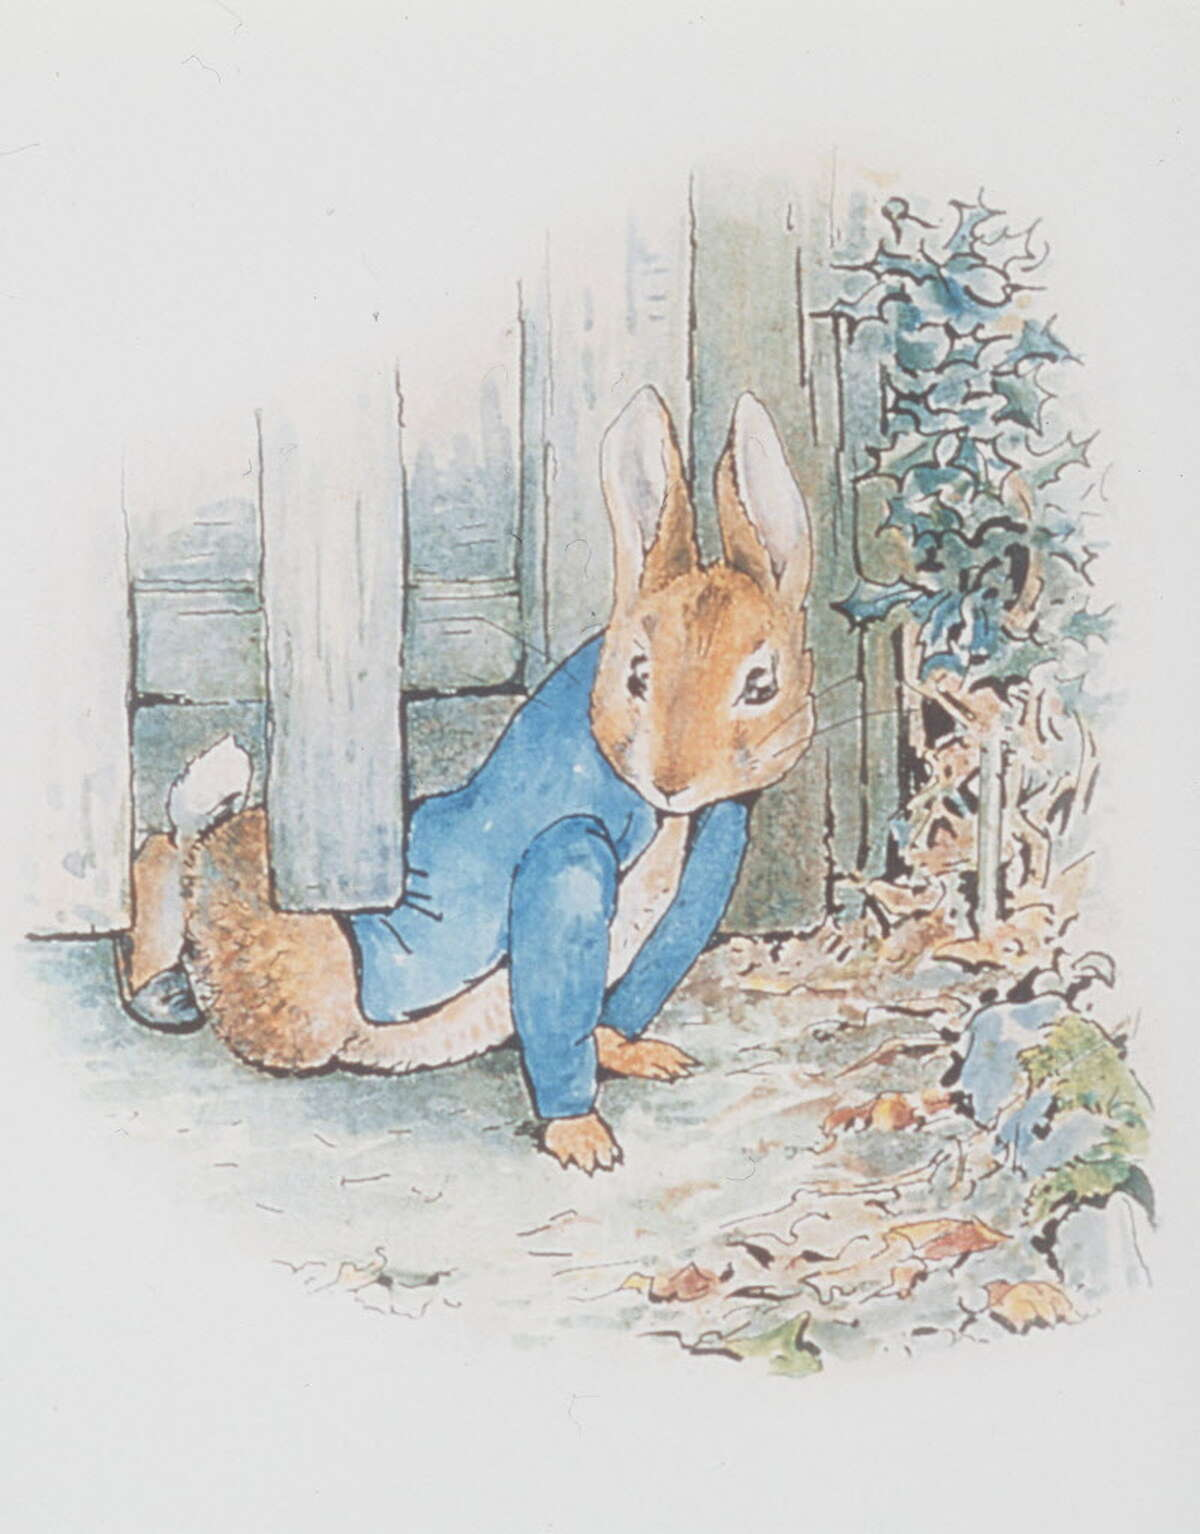 Early years Helen Beatrix Potter, called Beatrix, was born on July 28, 1866 to wealthy British parents. She was educated at home by governesses, including Annie Carter Moore.She loved drawing plants and animals and spending tme in nature.